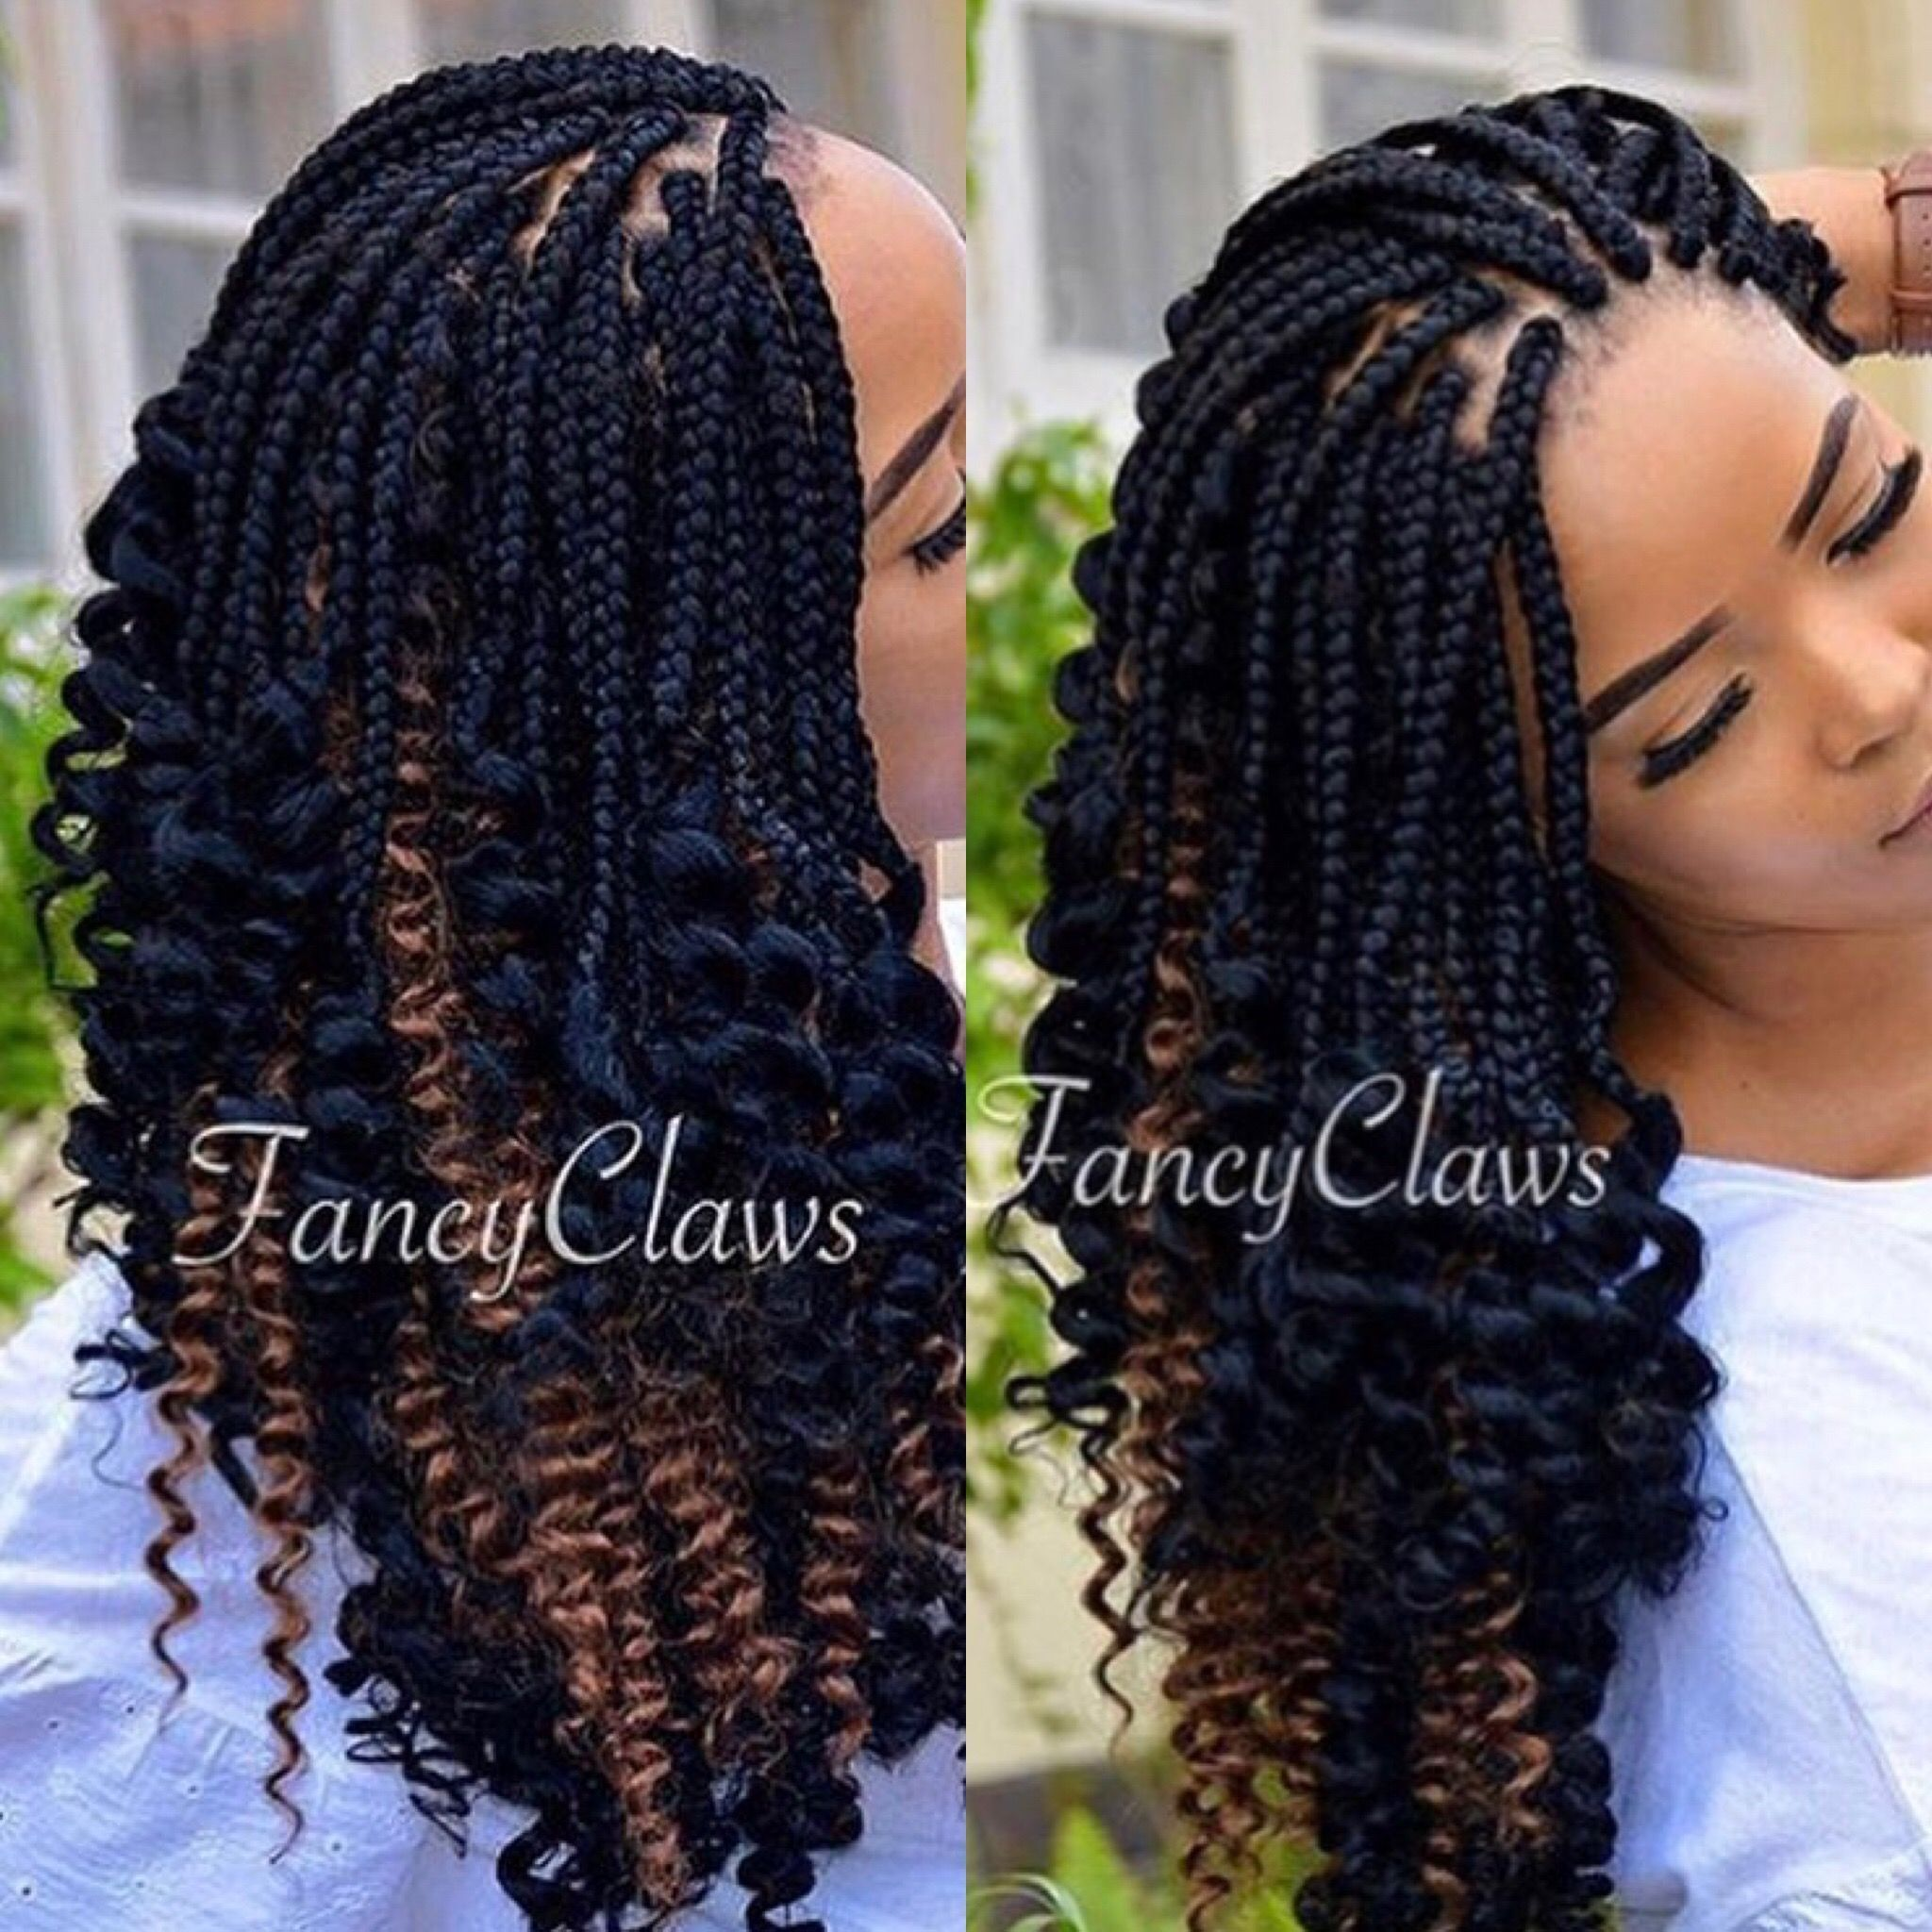 Braided Hairstyles For Black 12 Year Olds Braided Hairstyles Extensions 50s Braided Ha African Hair Braiding Styles Box Braids Styling Braids For Black Hair